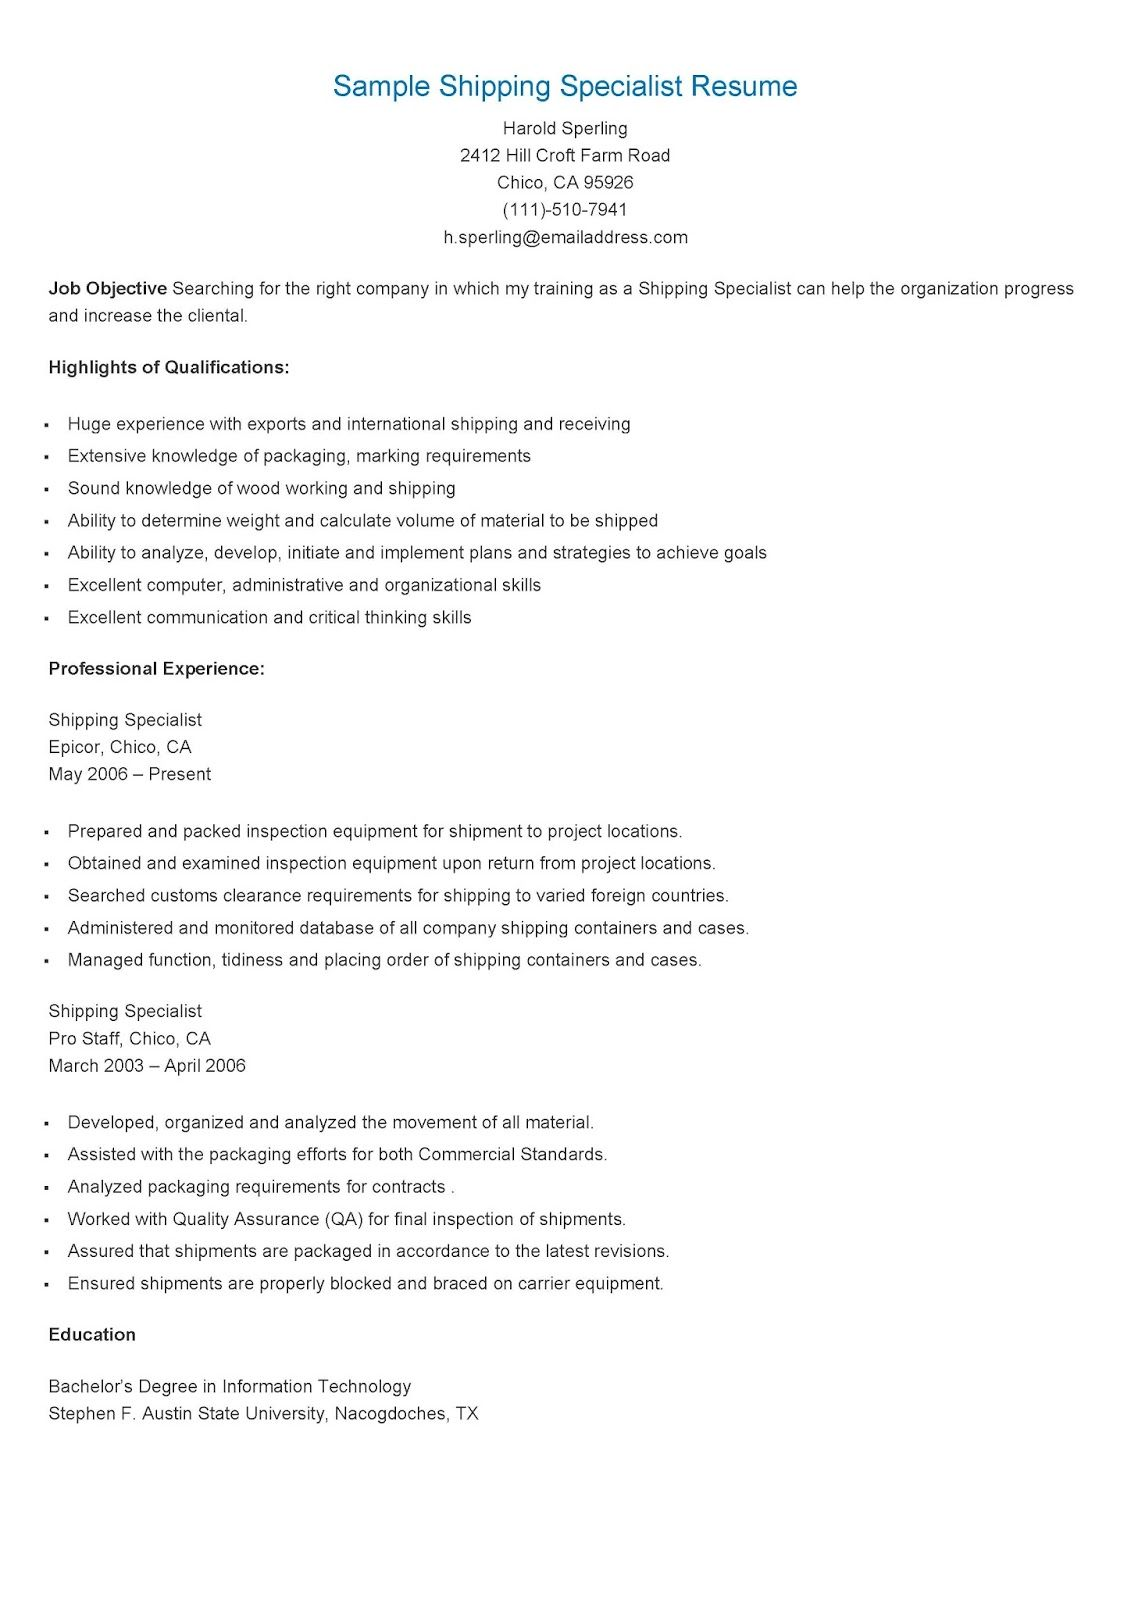 explore resume templates sample resume and more - Information Technology Specialist Sample Resume